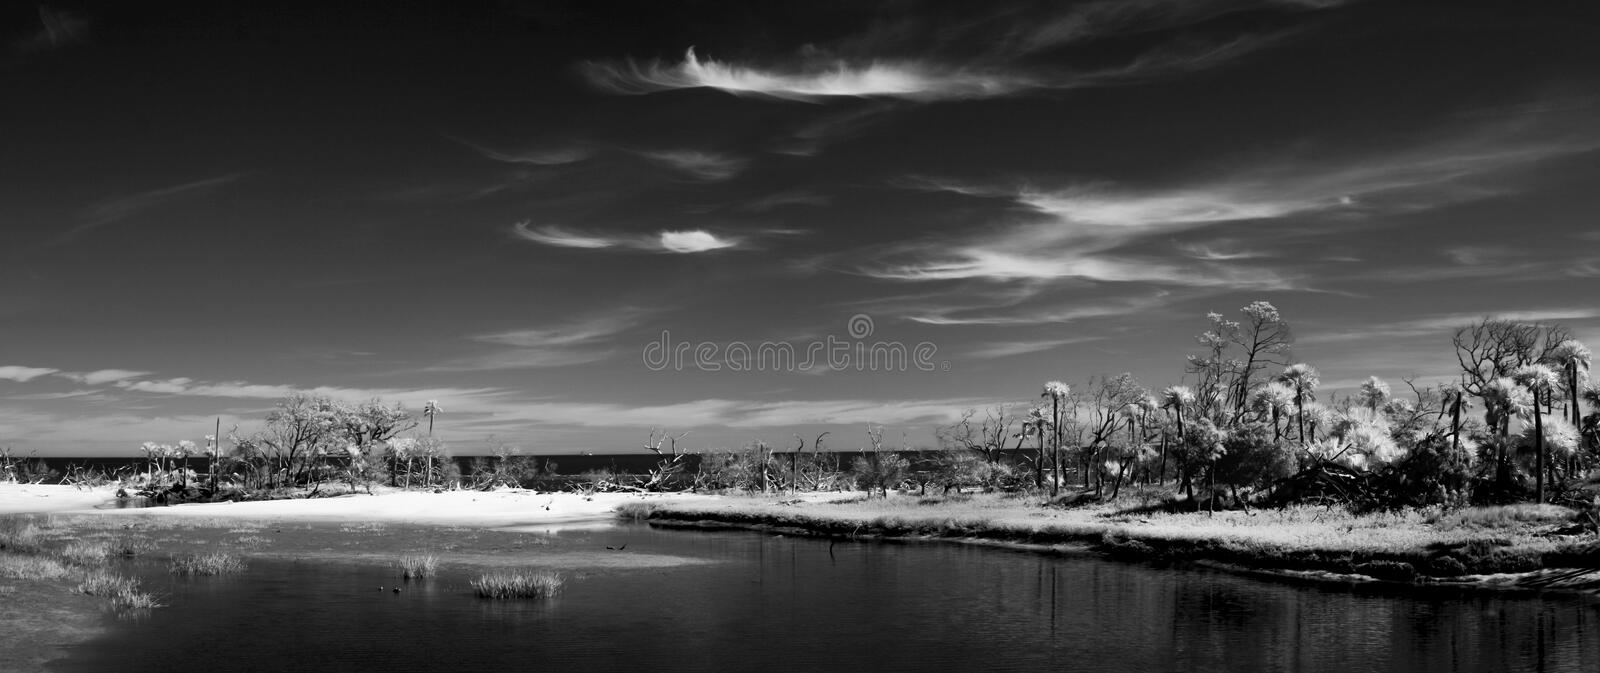 Black and white infrared photograph of the Atlantic coast of South Carolina, abstract surreal landscape stock photography